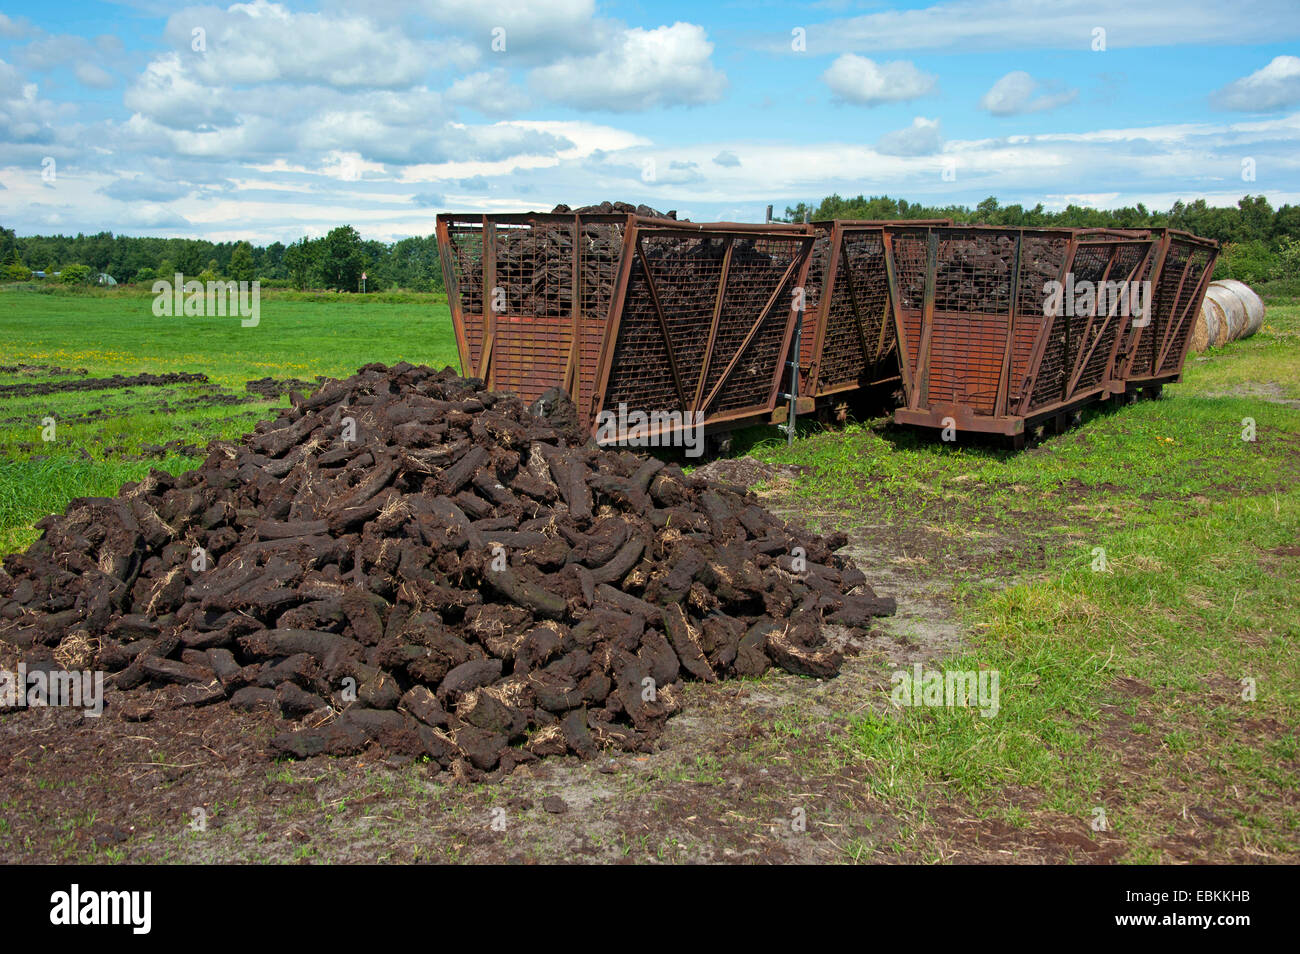 peat cutting, sods of peat and wagons, Germany, Lower Saxony, Wilhelmsfehn - Stock Image